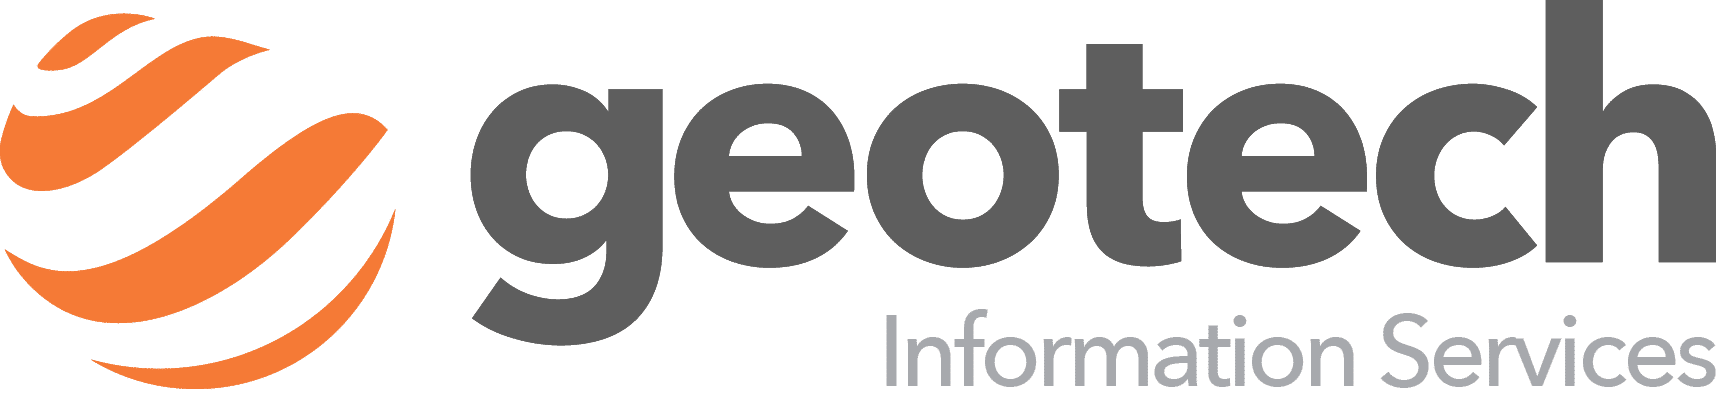 Geotech Information Services